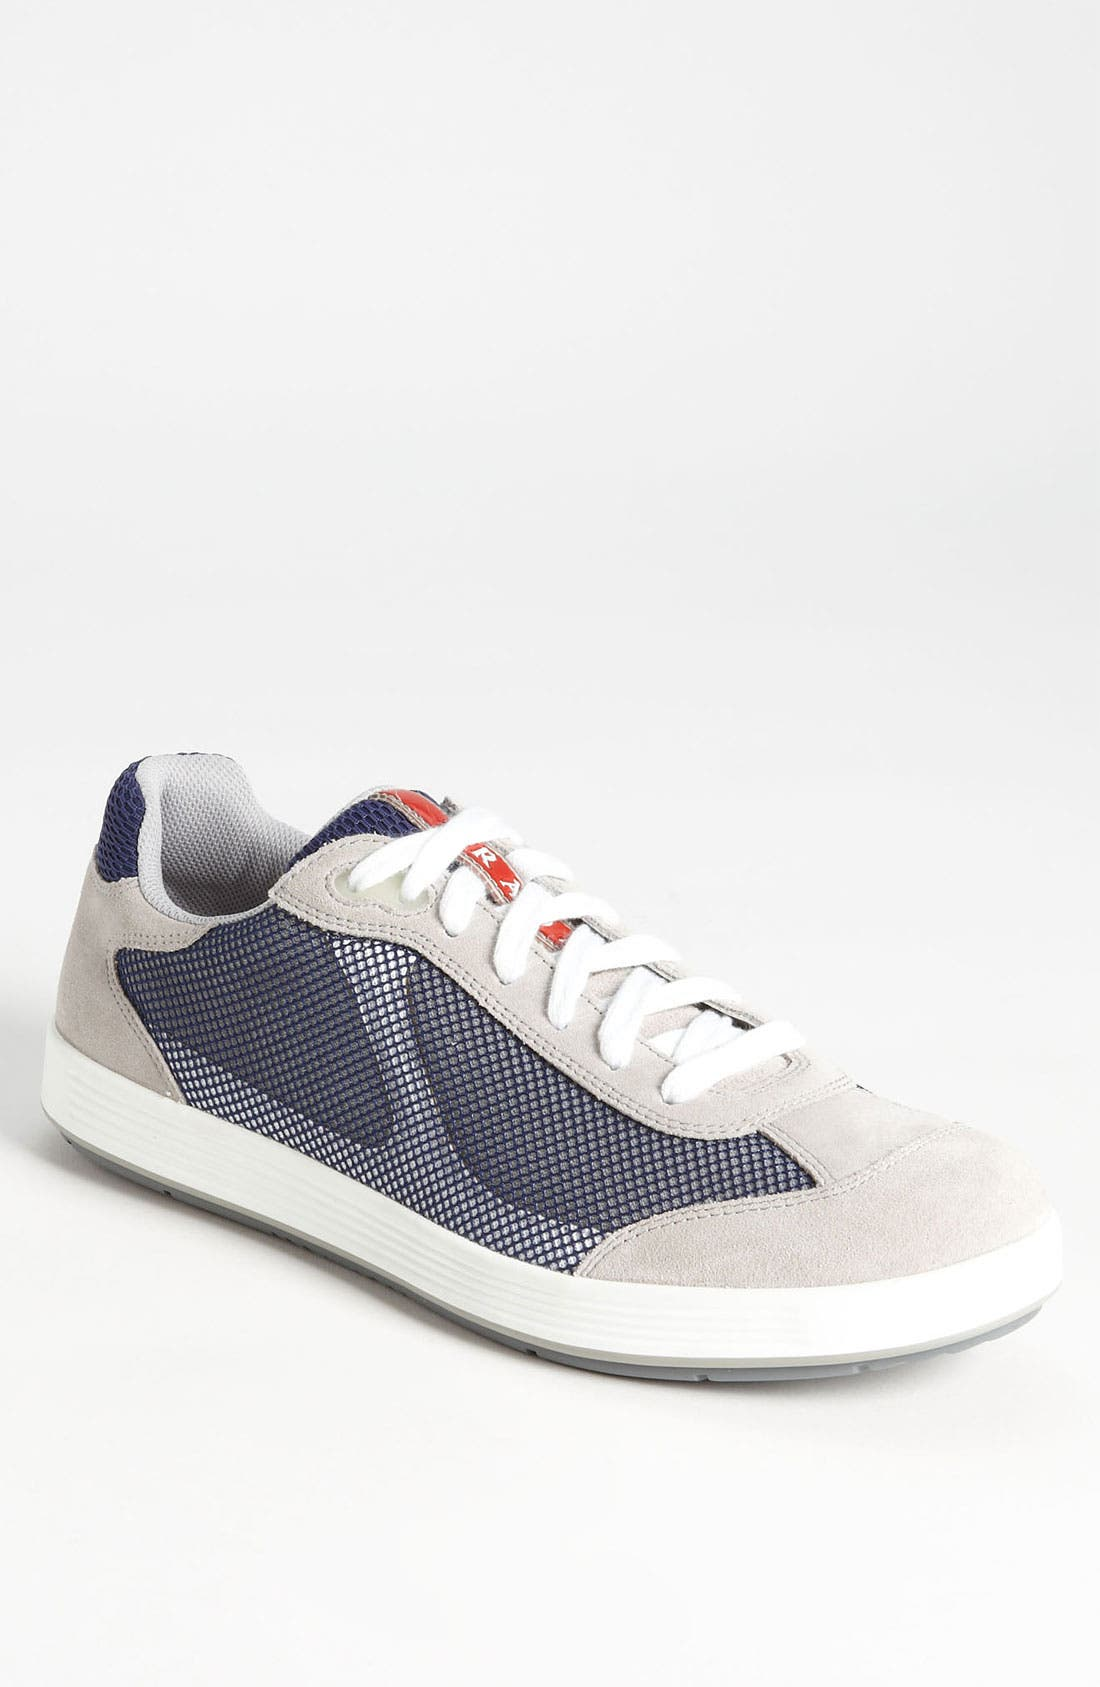 Alternate Image 1 Selected - Prada Colored Mesh Sneaker